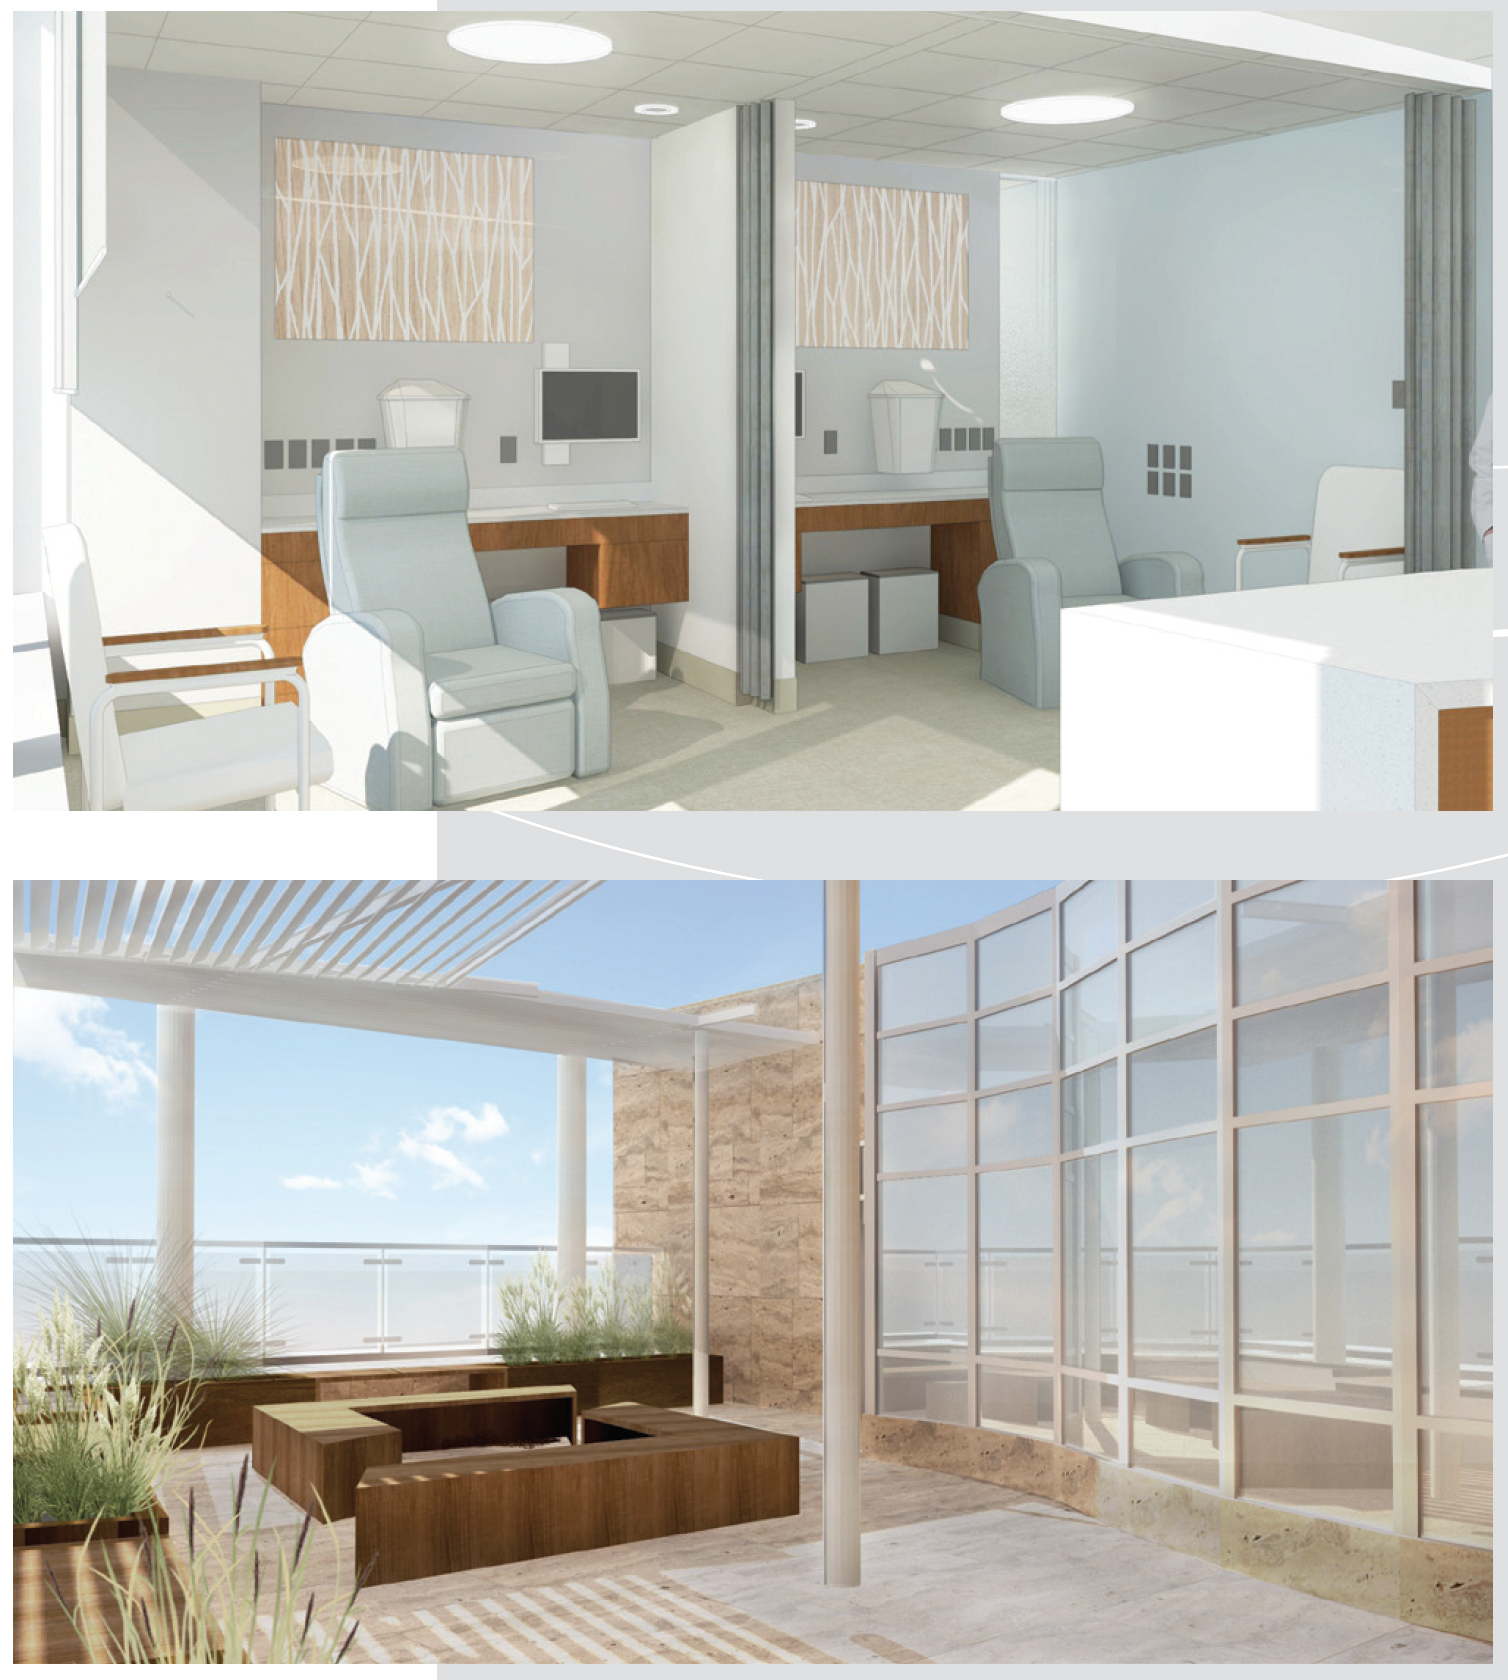 renderings of a new infusion space in the cancer center and a new balcony space